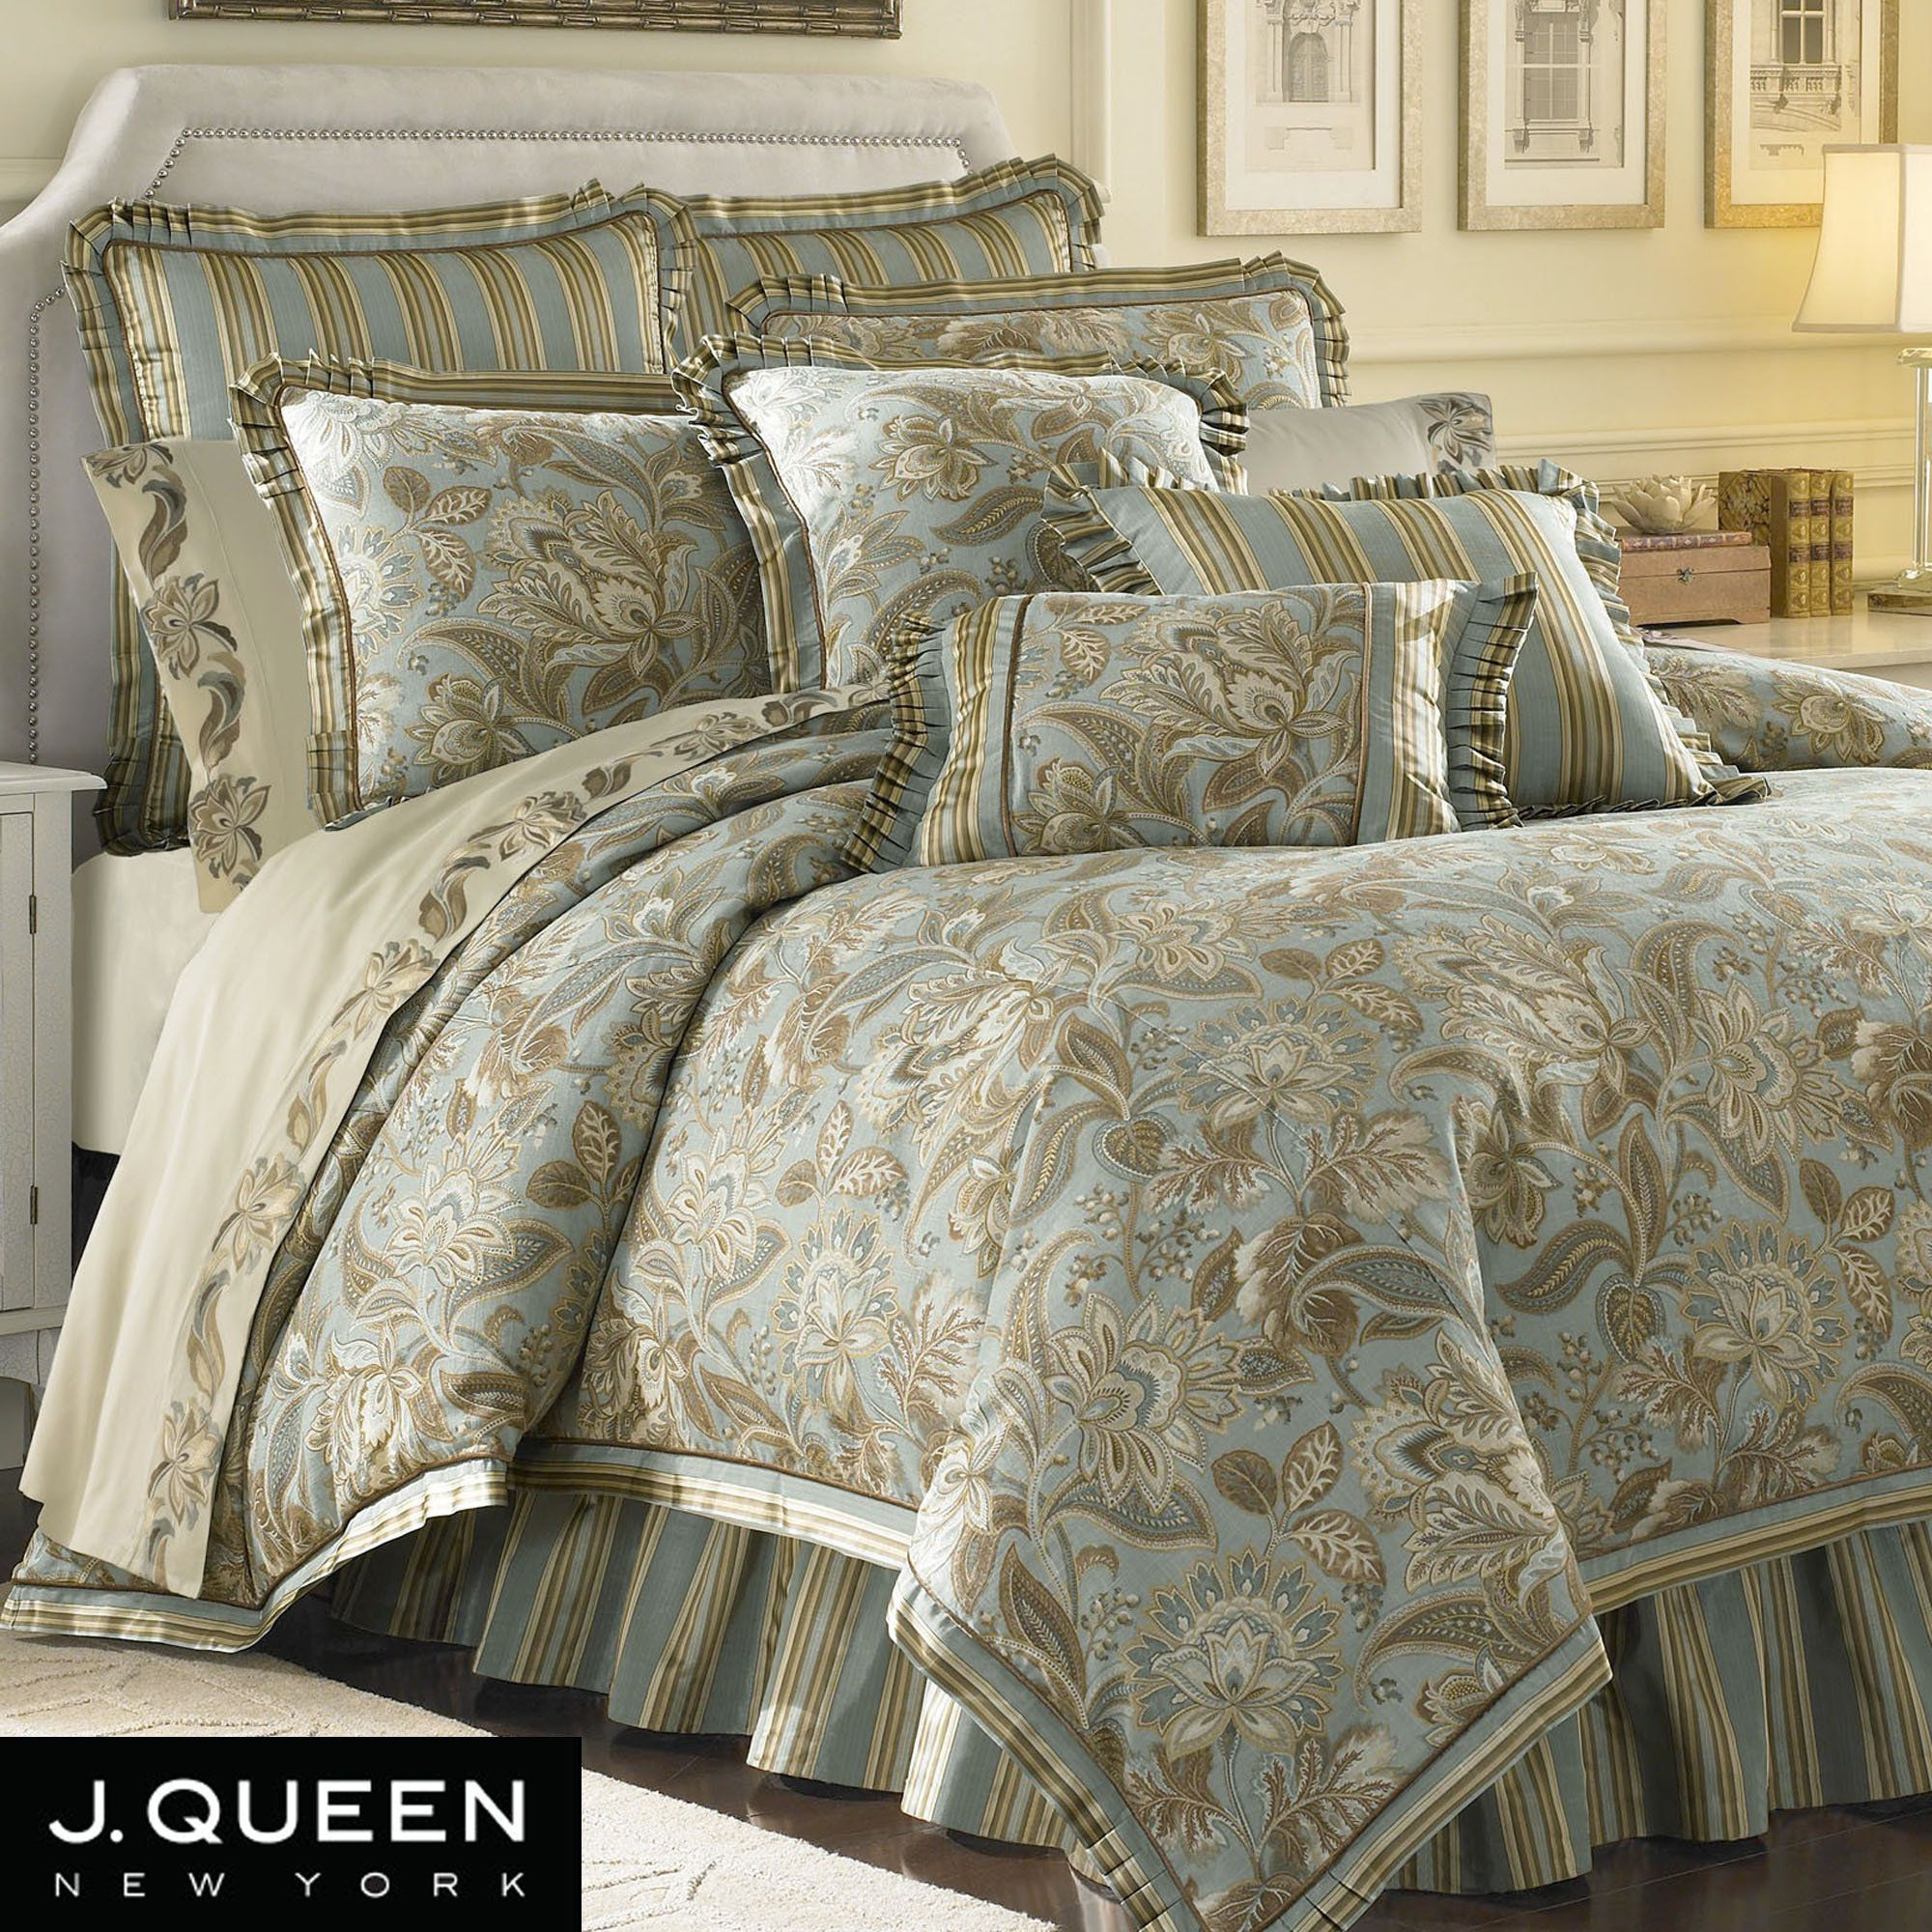 Camilla Jacobean forter Bedding by J Queen New York